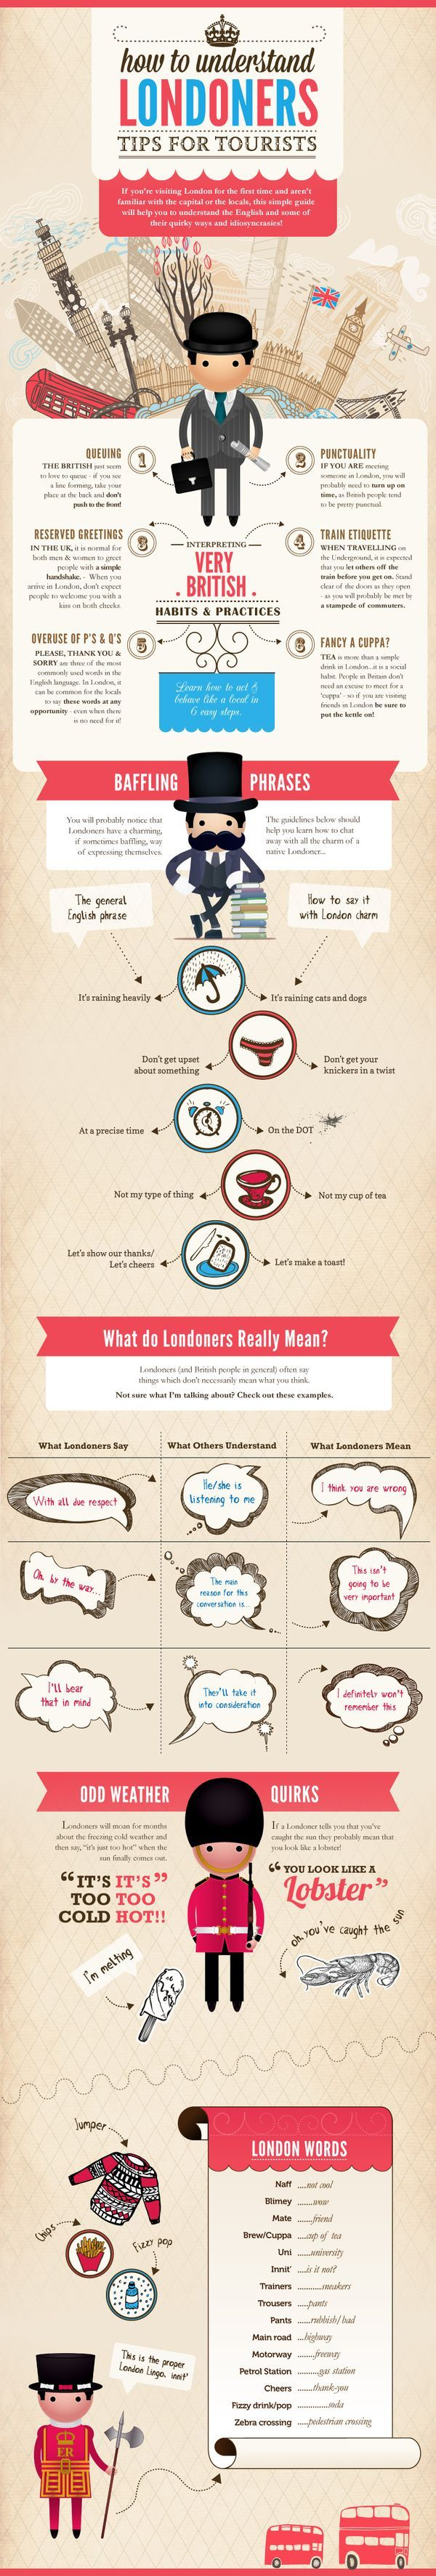 Tips for Tourists: How To Understand Londoners  #RePin by AT Social Media Marketing - Pinterest Marketing Specialists ATSocialMedia.co.uk